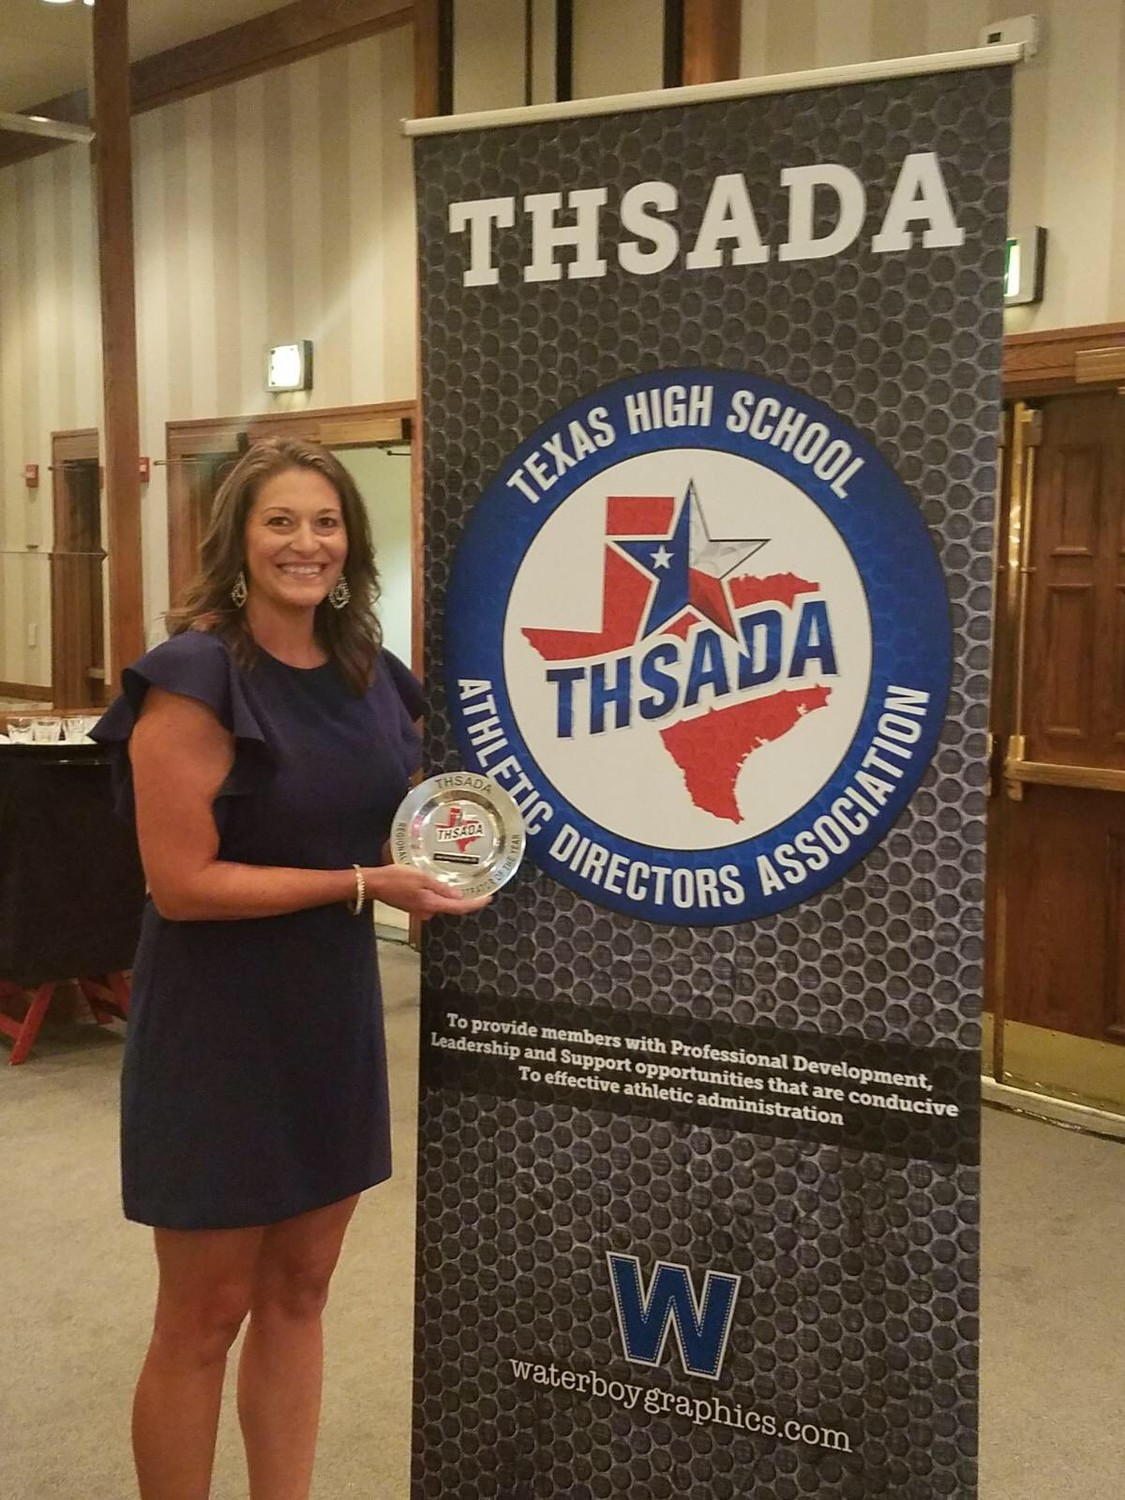 Leander ISD athletic director Jody Hormann was presented with the THSADA Region 6 AD of the Year award at the Texas High School Athletic Directors Association Hall of Honor banquet in San Antonio on Sunday.